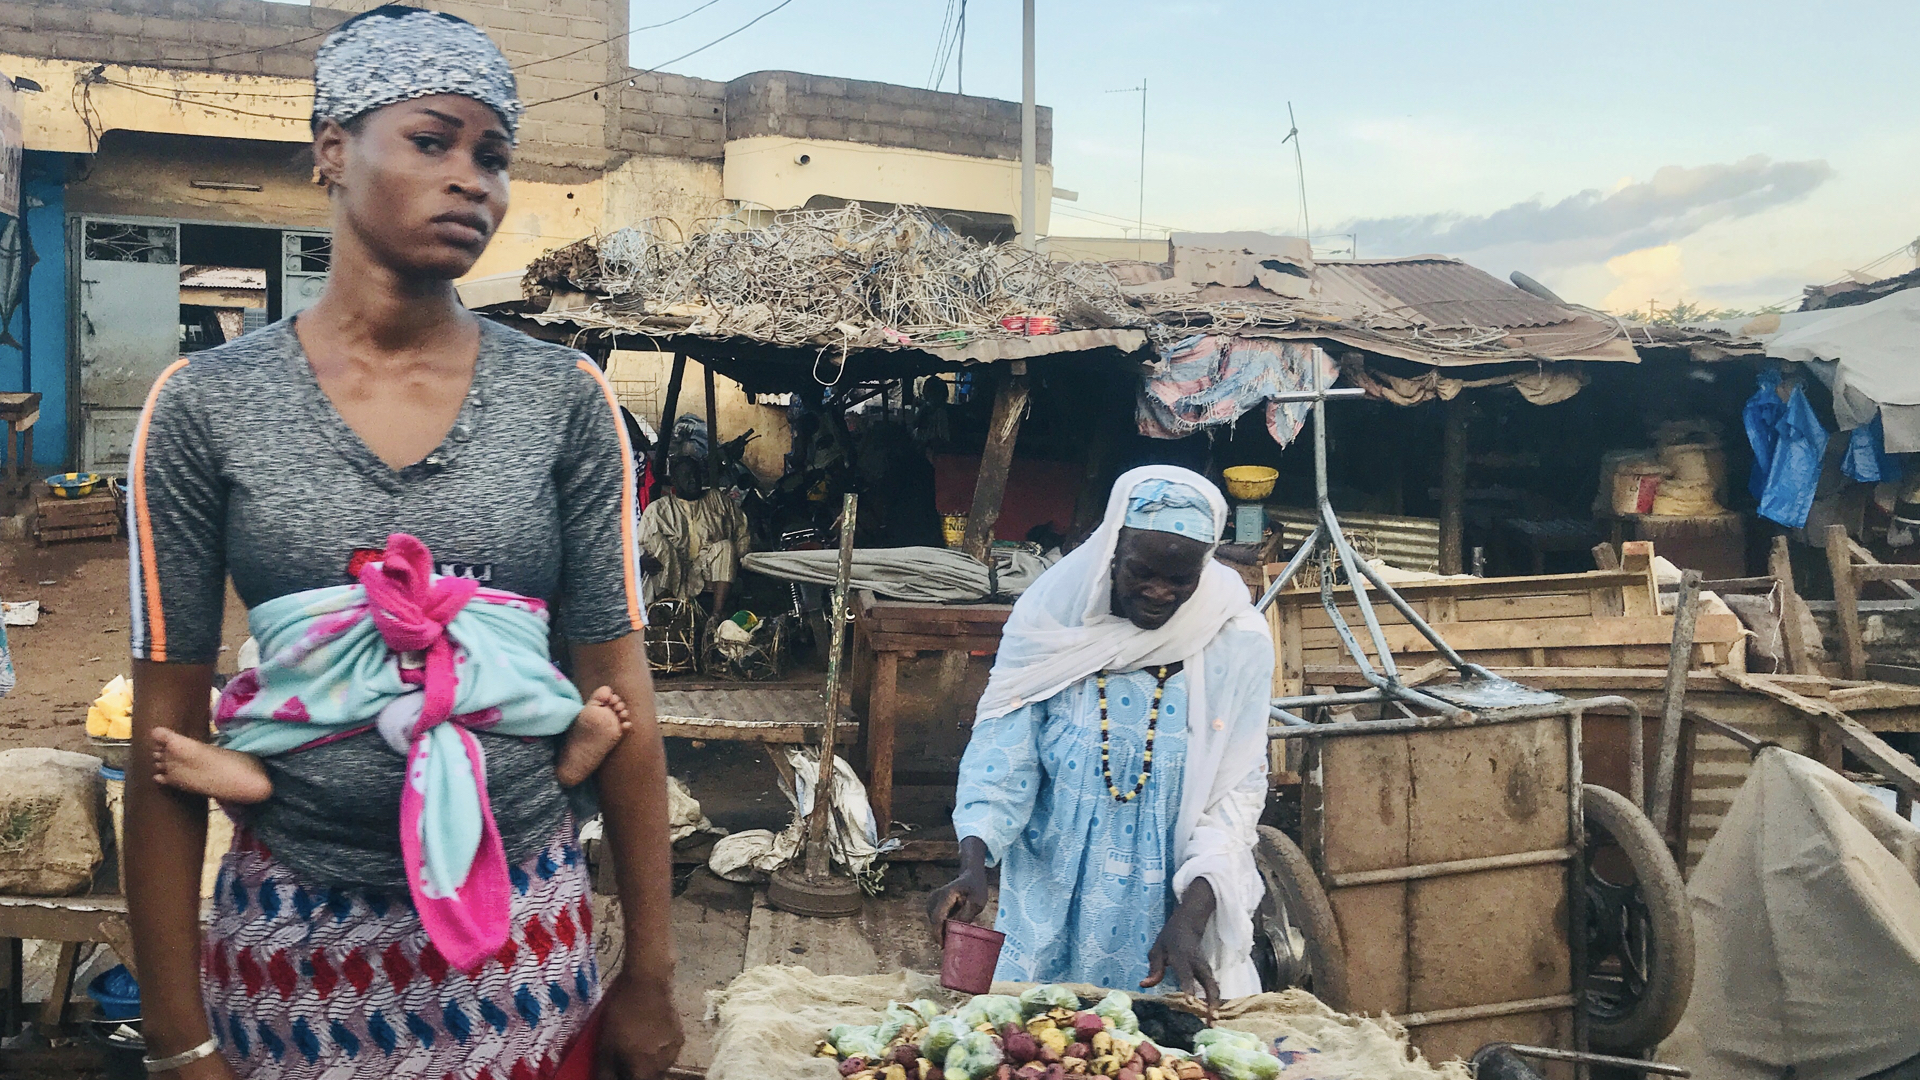 Women at a market in Bamako. Violence has forced many to seek safety in the capital, staying with extended family. By the spike in population to Bamako has created increased demand for limited services like health and education. In a country that was already coping with challenges of poverty, the crisis has made matters worse.